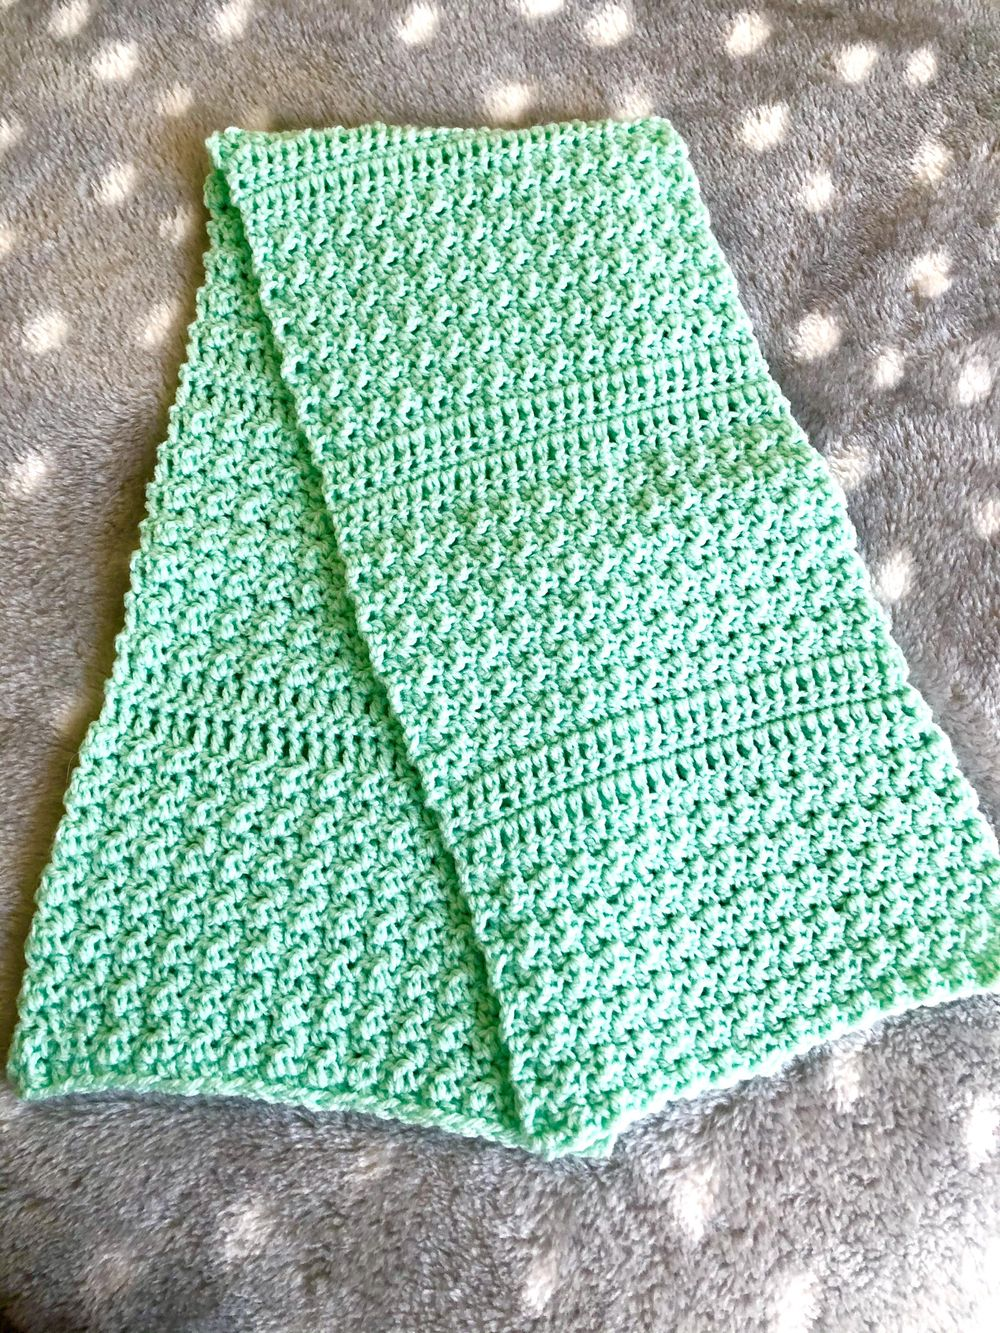 Scarf - image 1 - student project